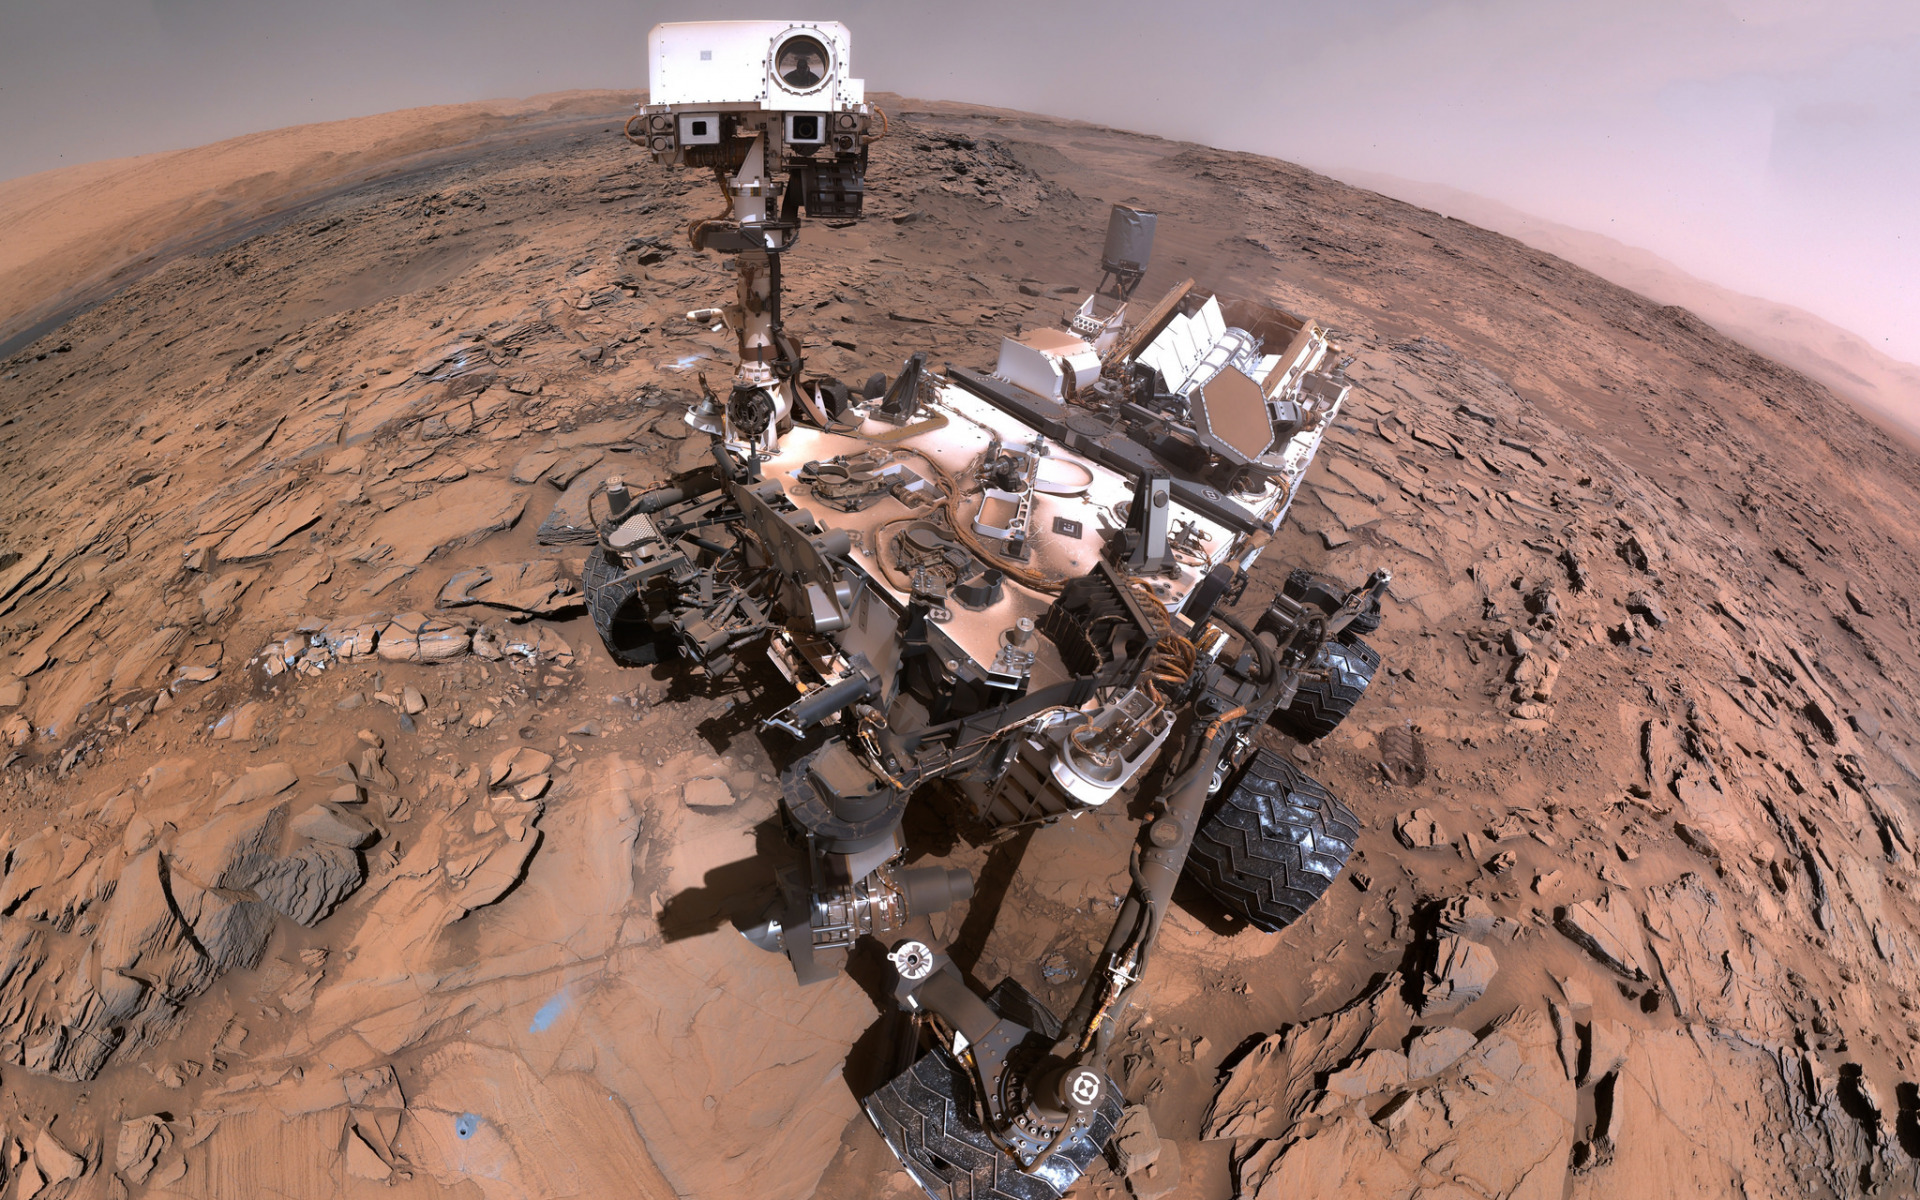 nasa curiosity rover pictures - HD1920×1200